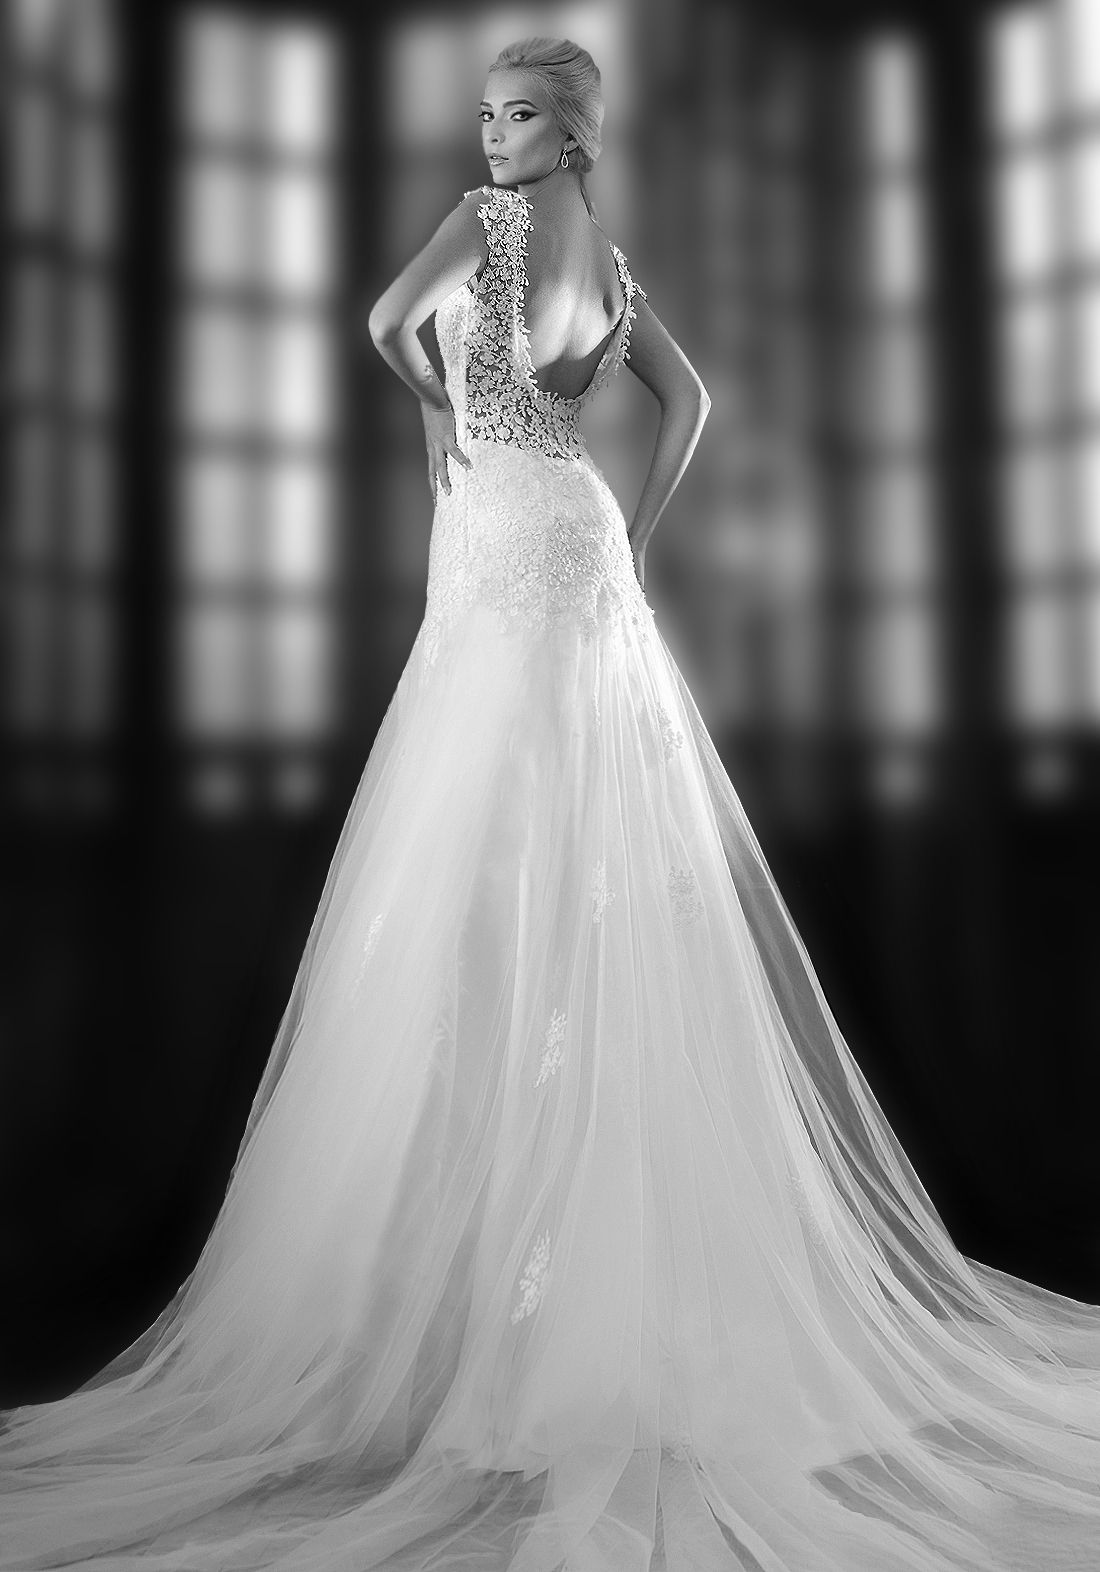 Giselle wedding dresses one love collection bien savvy